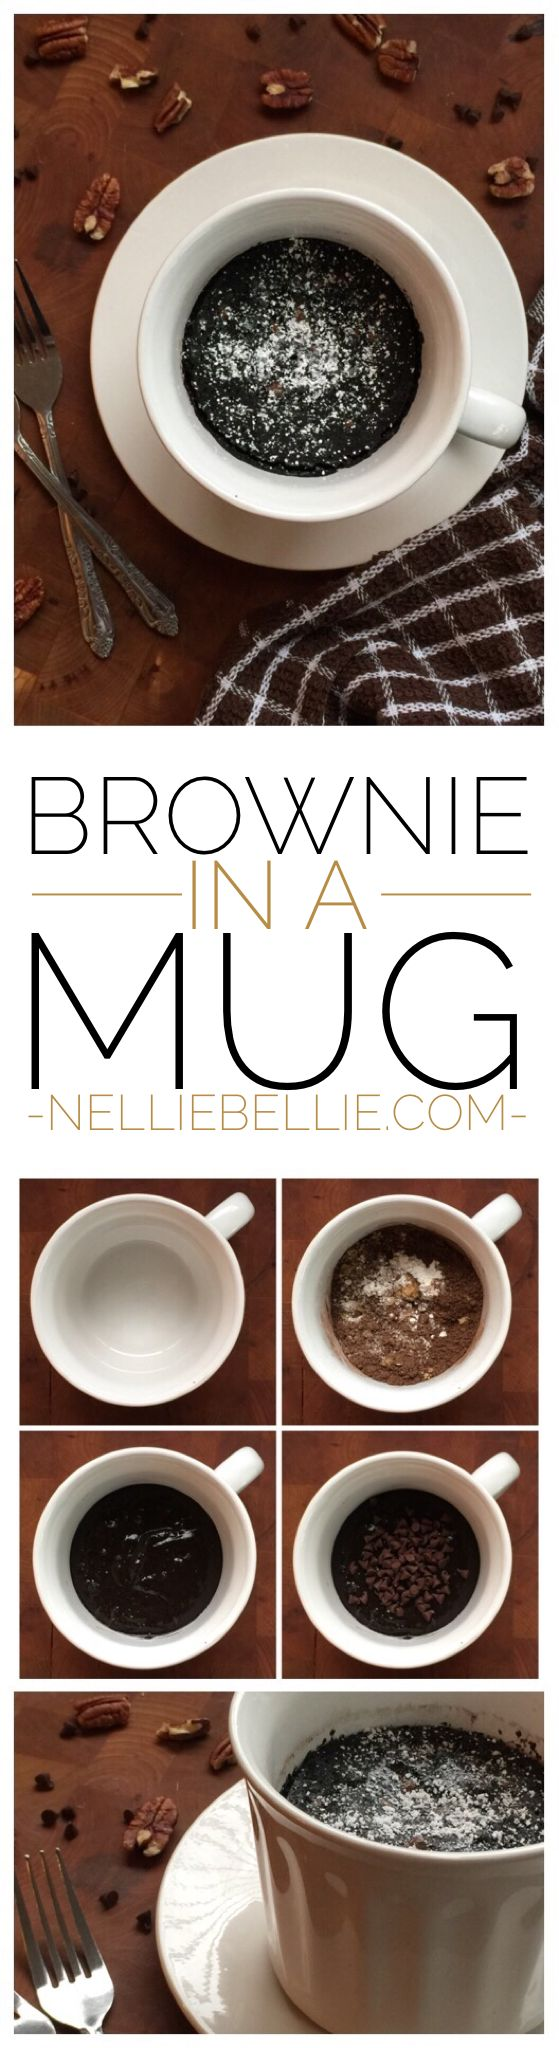 Microwave 3 minute brownies in a mug are easy and fast! Perfect treat for one person tonight!